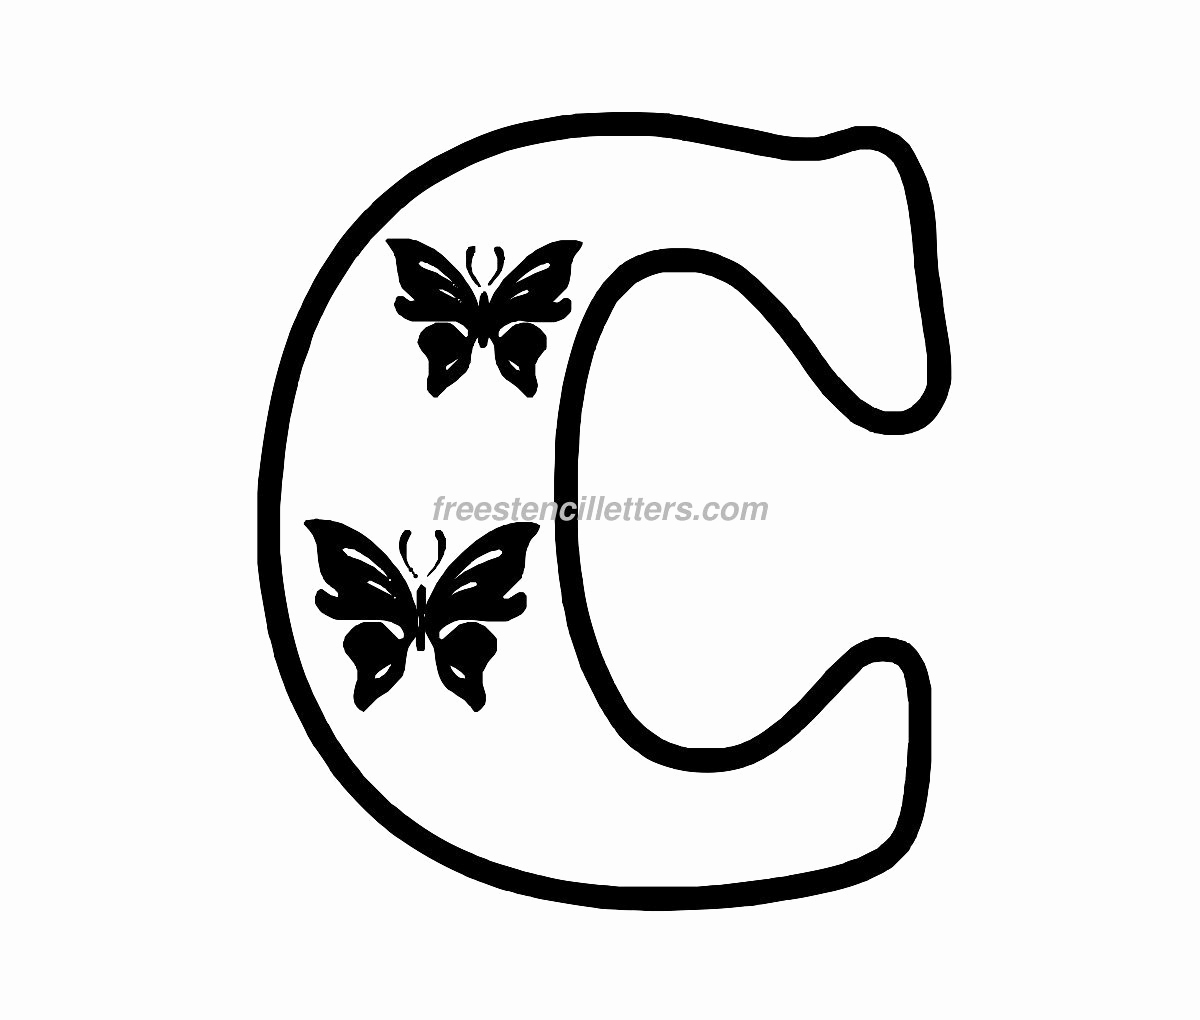 Letters Stencils to Print Inspirational Print C Letter Stencil Free Stencil Letters